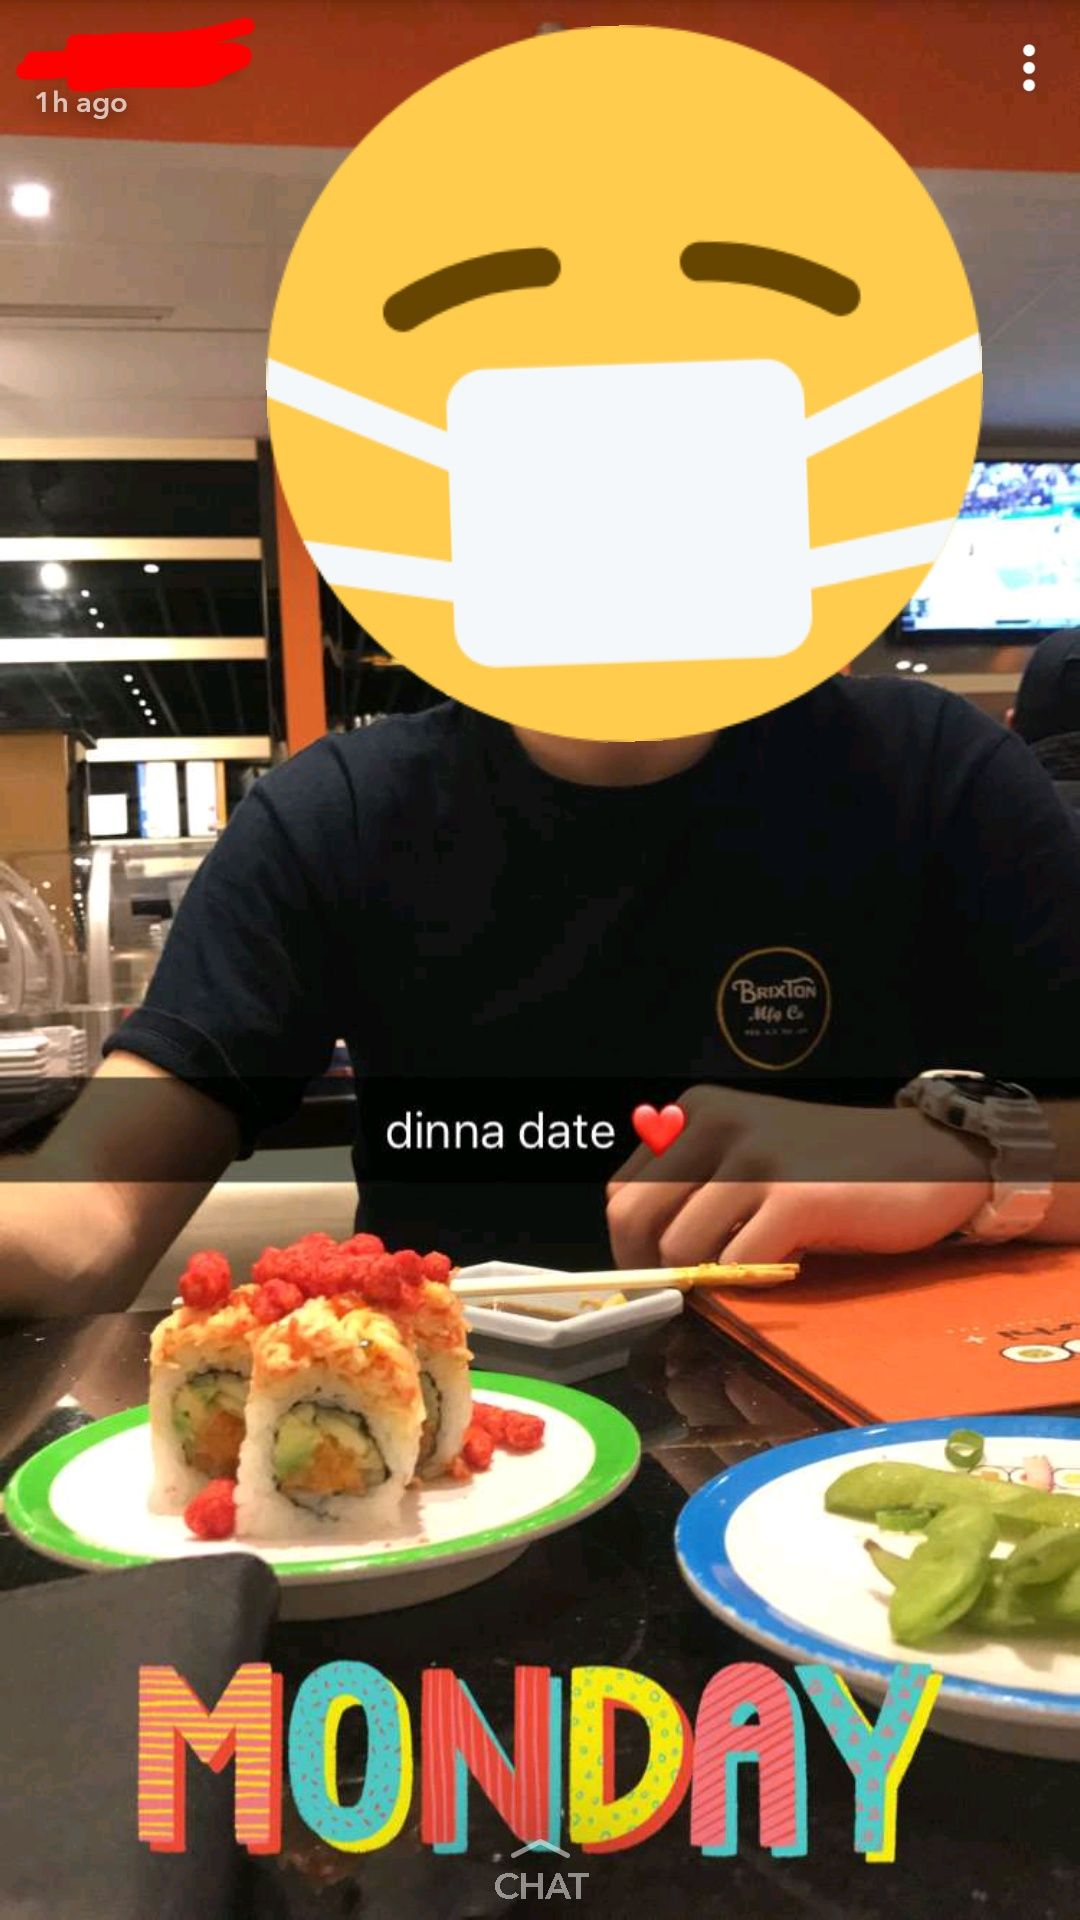 Spotted this sushi with cheetos on my friends Snapchat